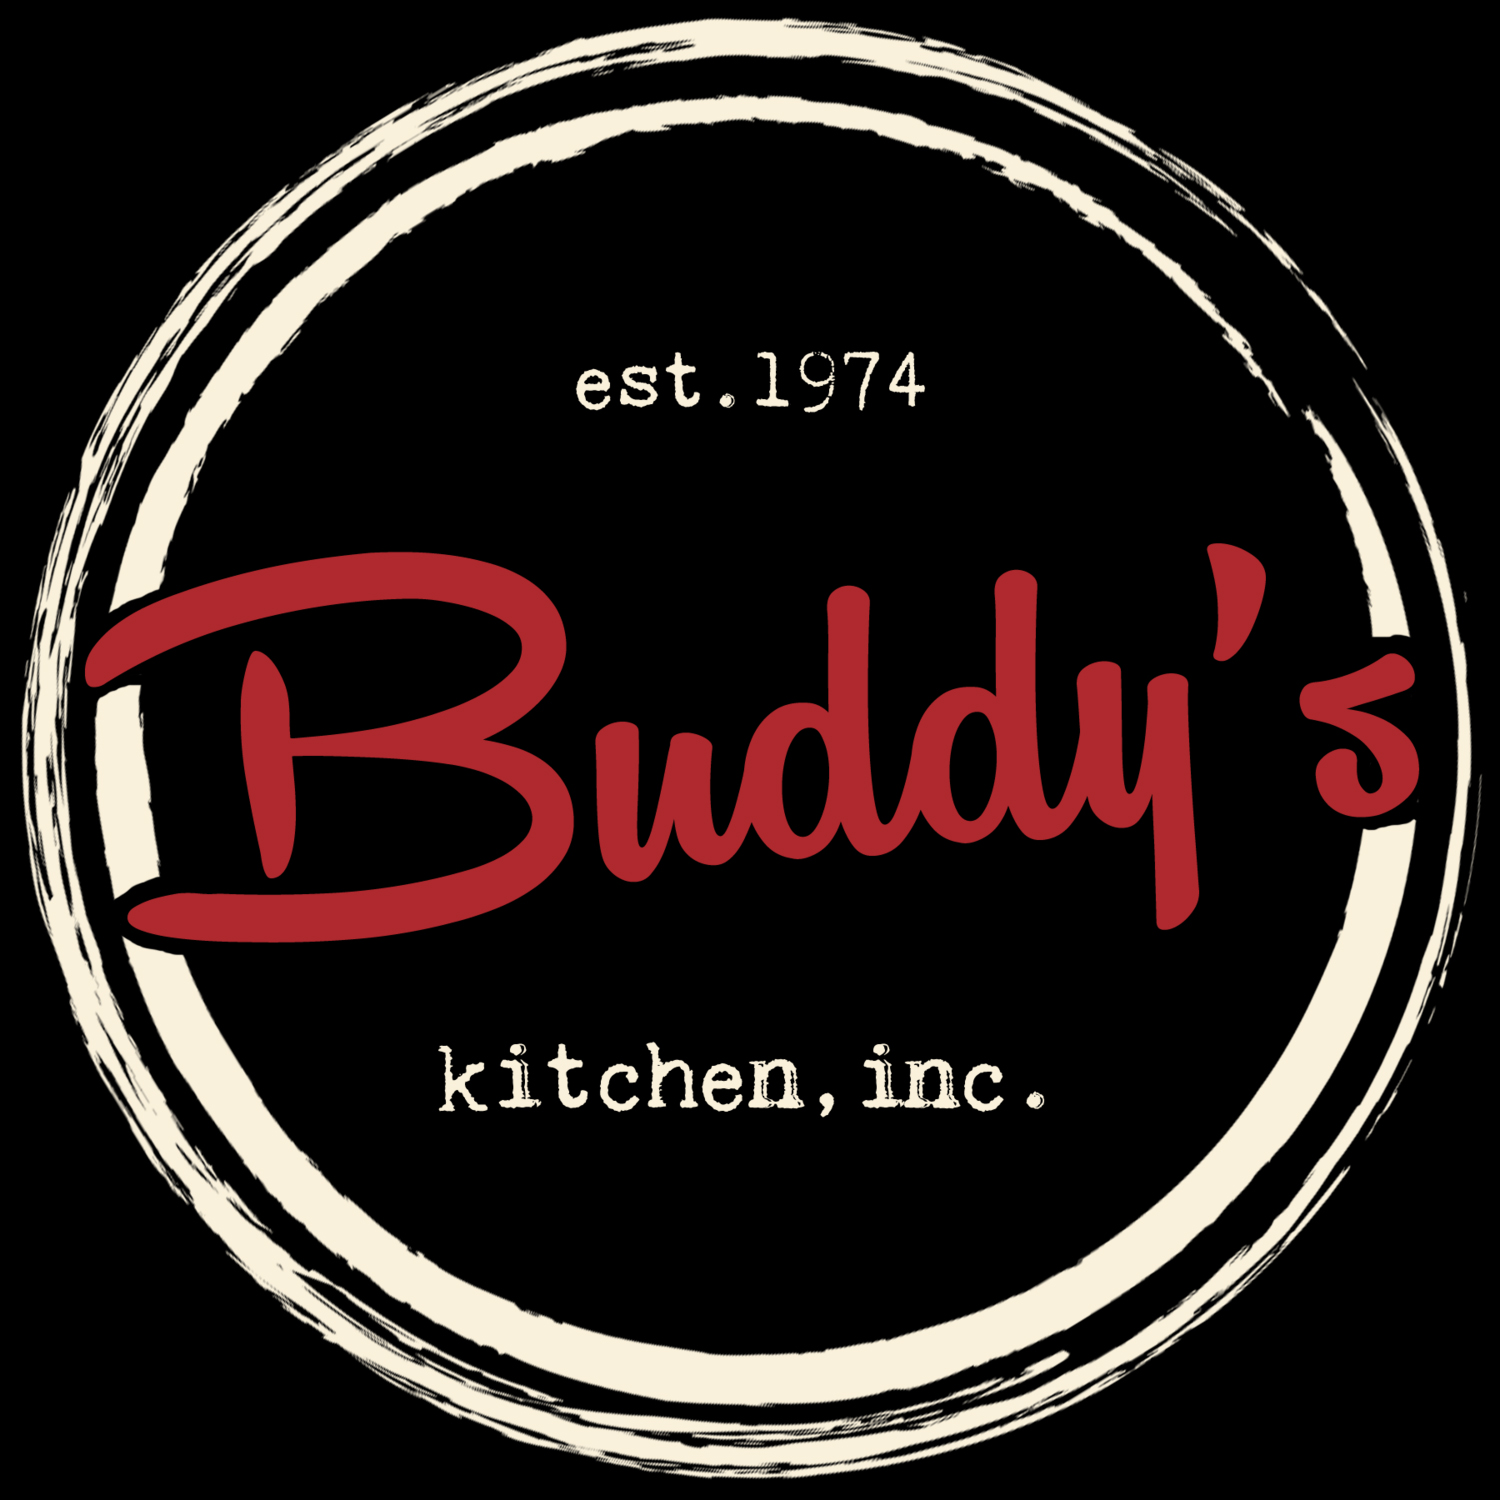 Buddy's Kitchen Plans to Add 300 Jobs in Lakeville